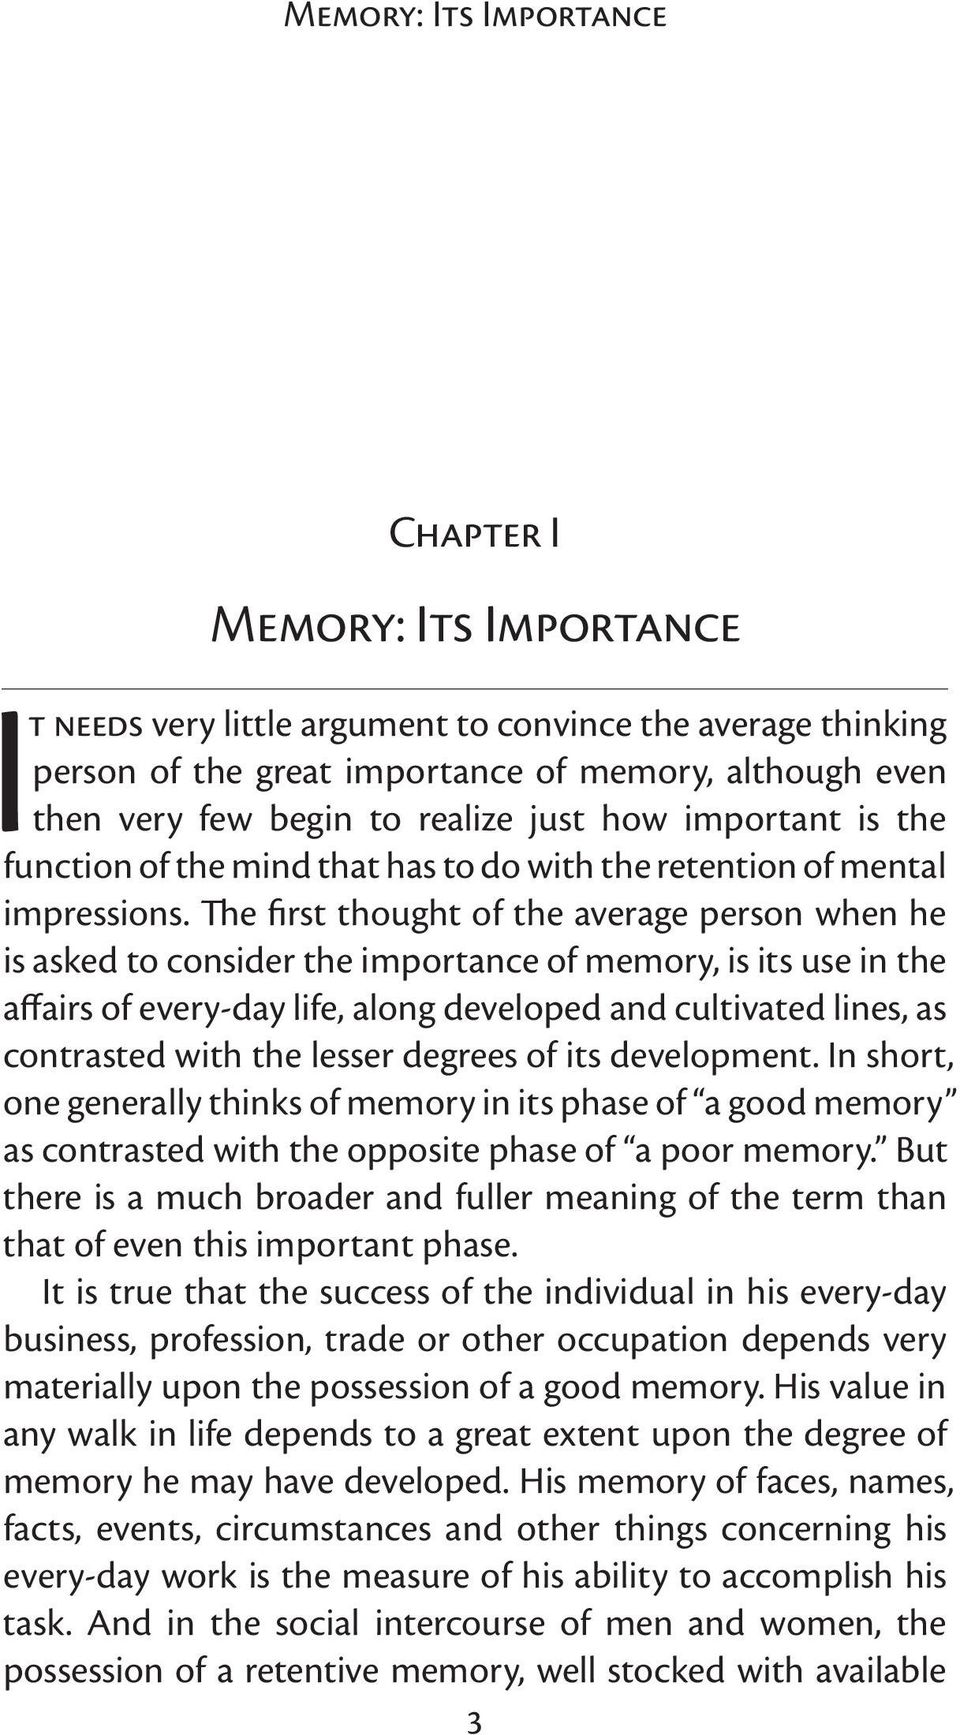 The first thought of the average person when he is asked to consider the importance of memory, is its use in the affairs of every day life, along developed and cultivated lines, as contrasted with